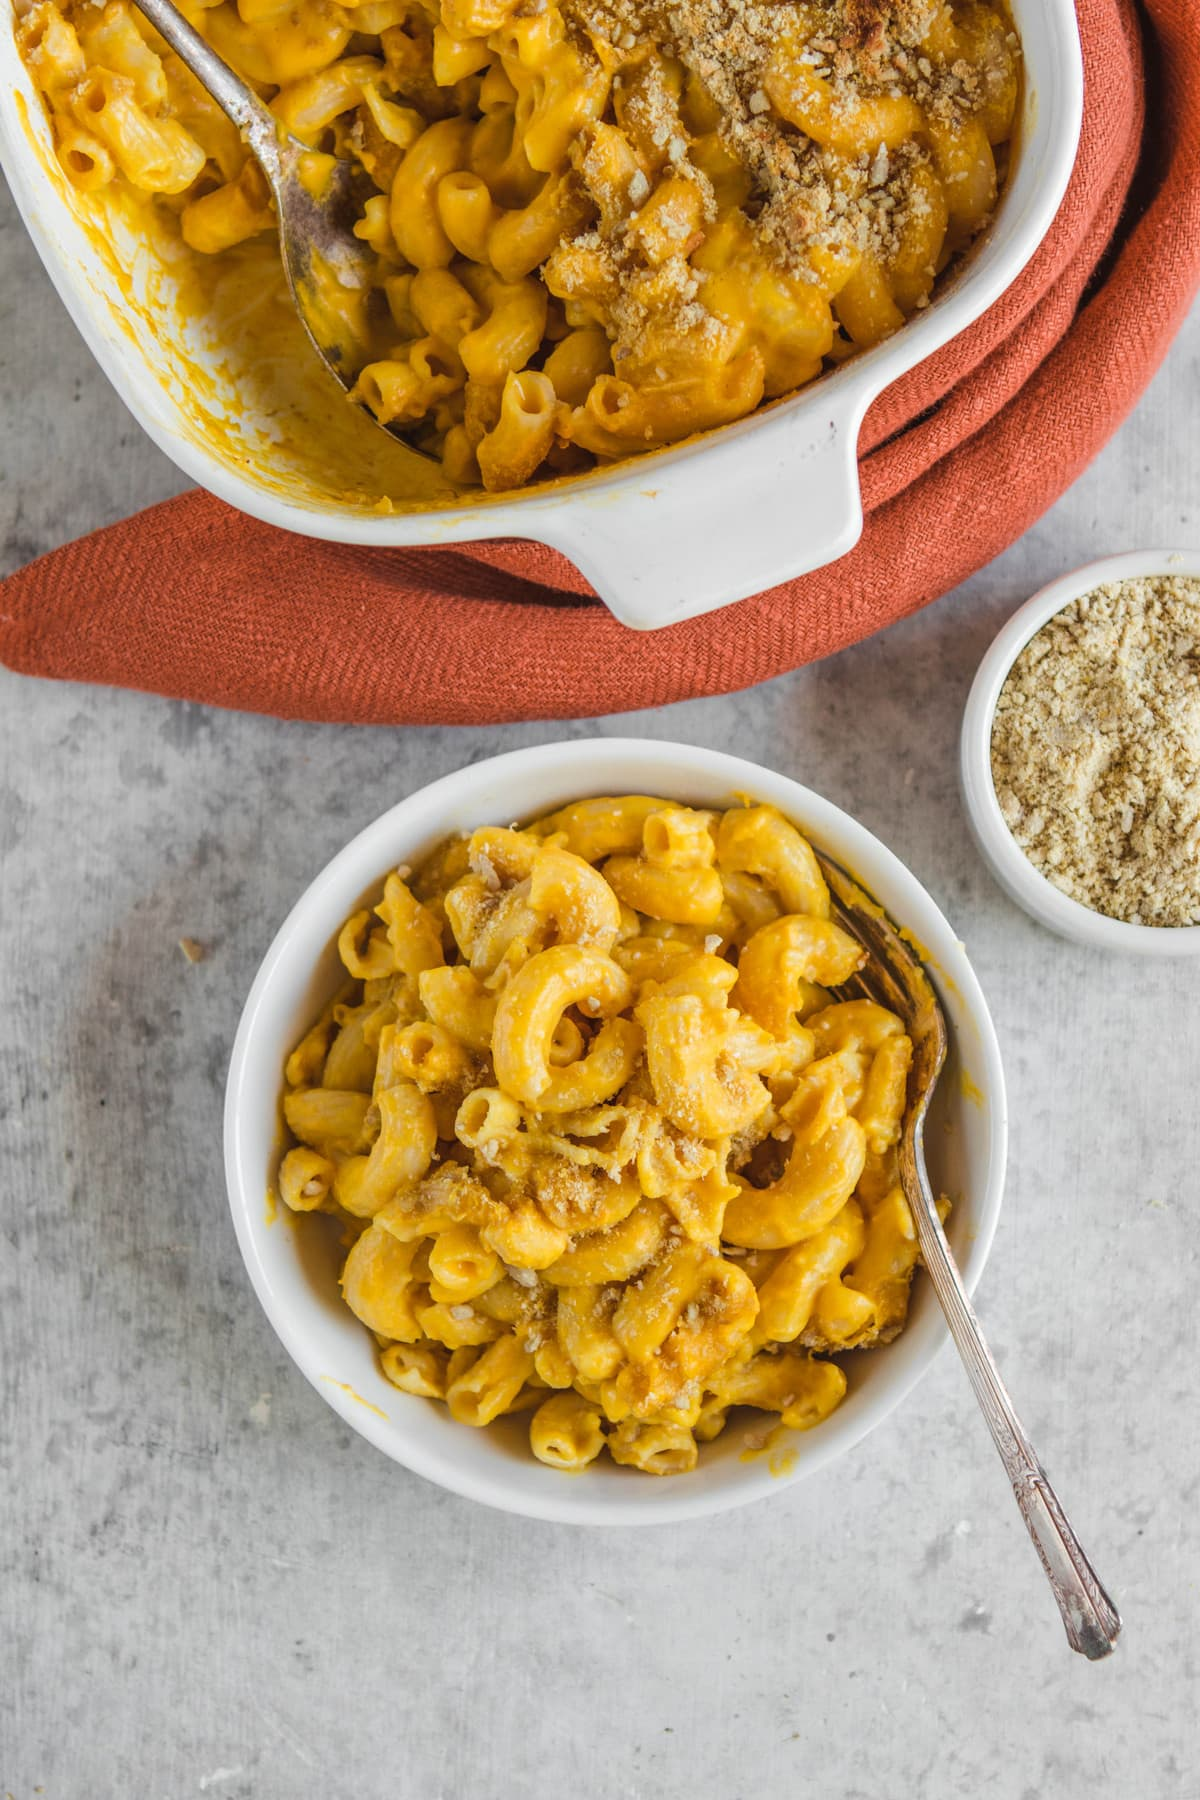 Baked Vegan Mac And Cheese Gluten Free Nut Free From My